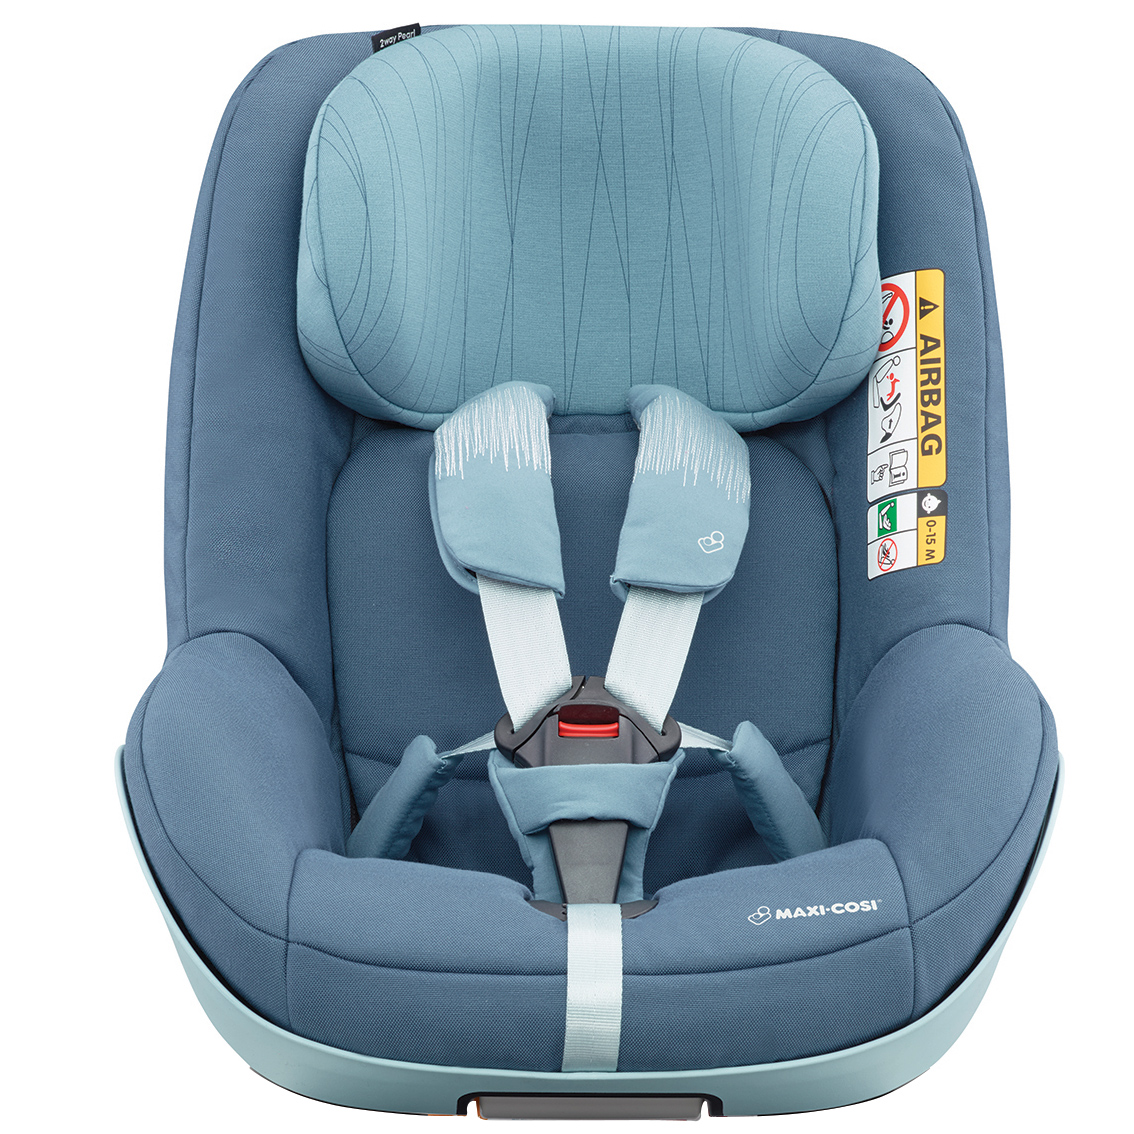 maxi cosi safety seat 2way pearl 2018 frequency blue buy at kidsroom car seats. Black Bedroom Furniture Sets. Home Design Ideas